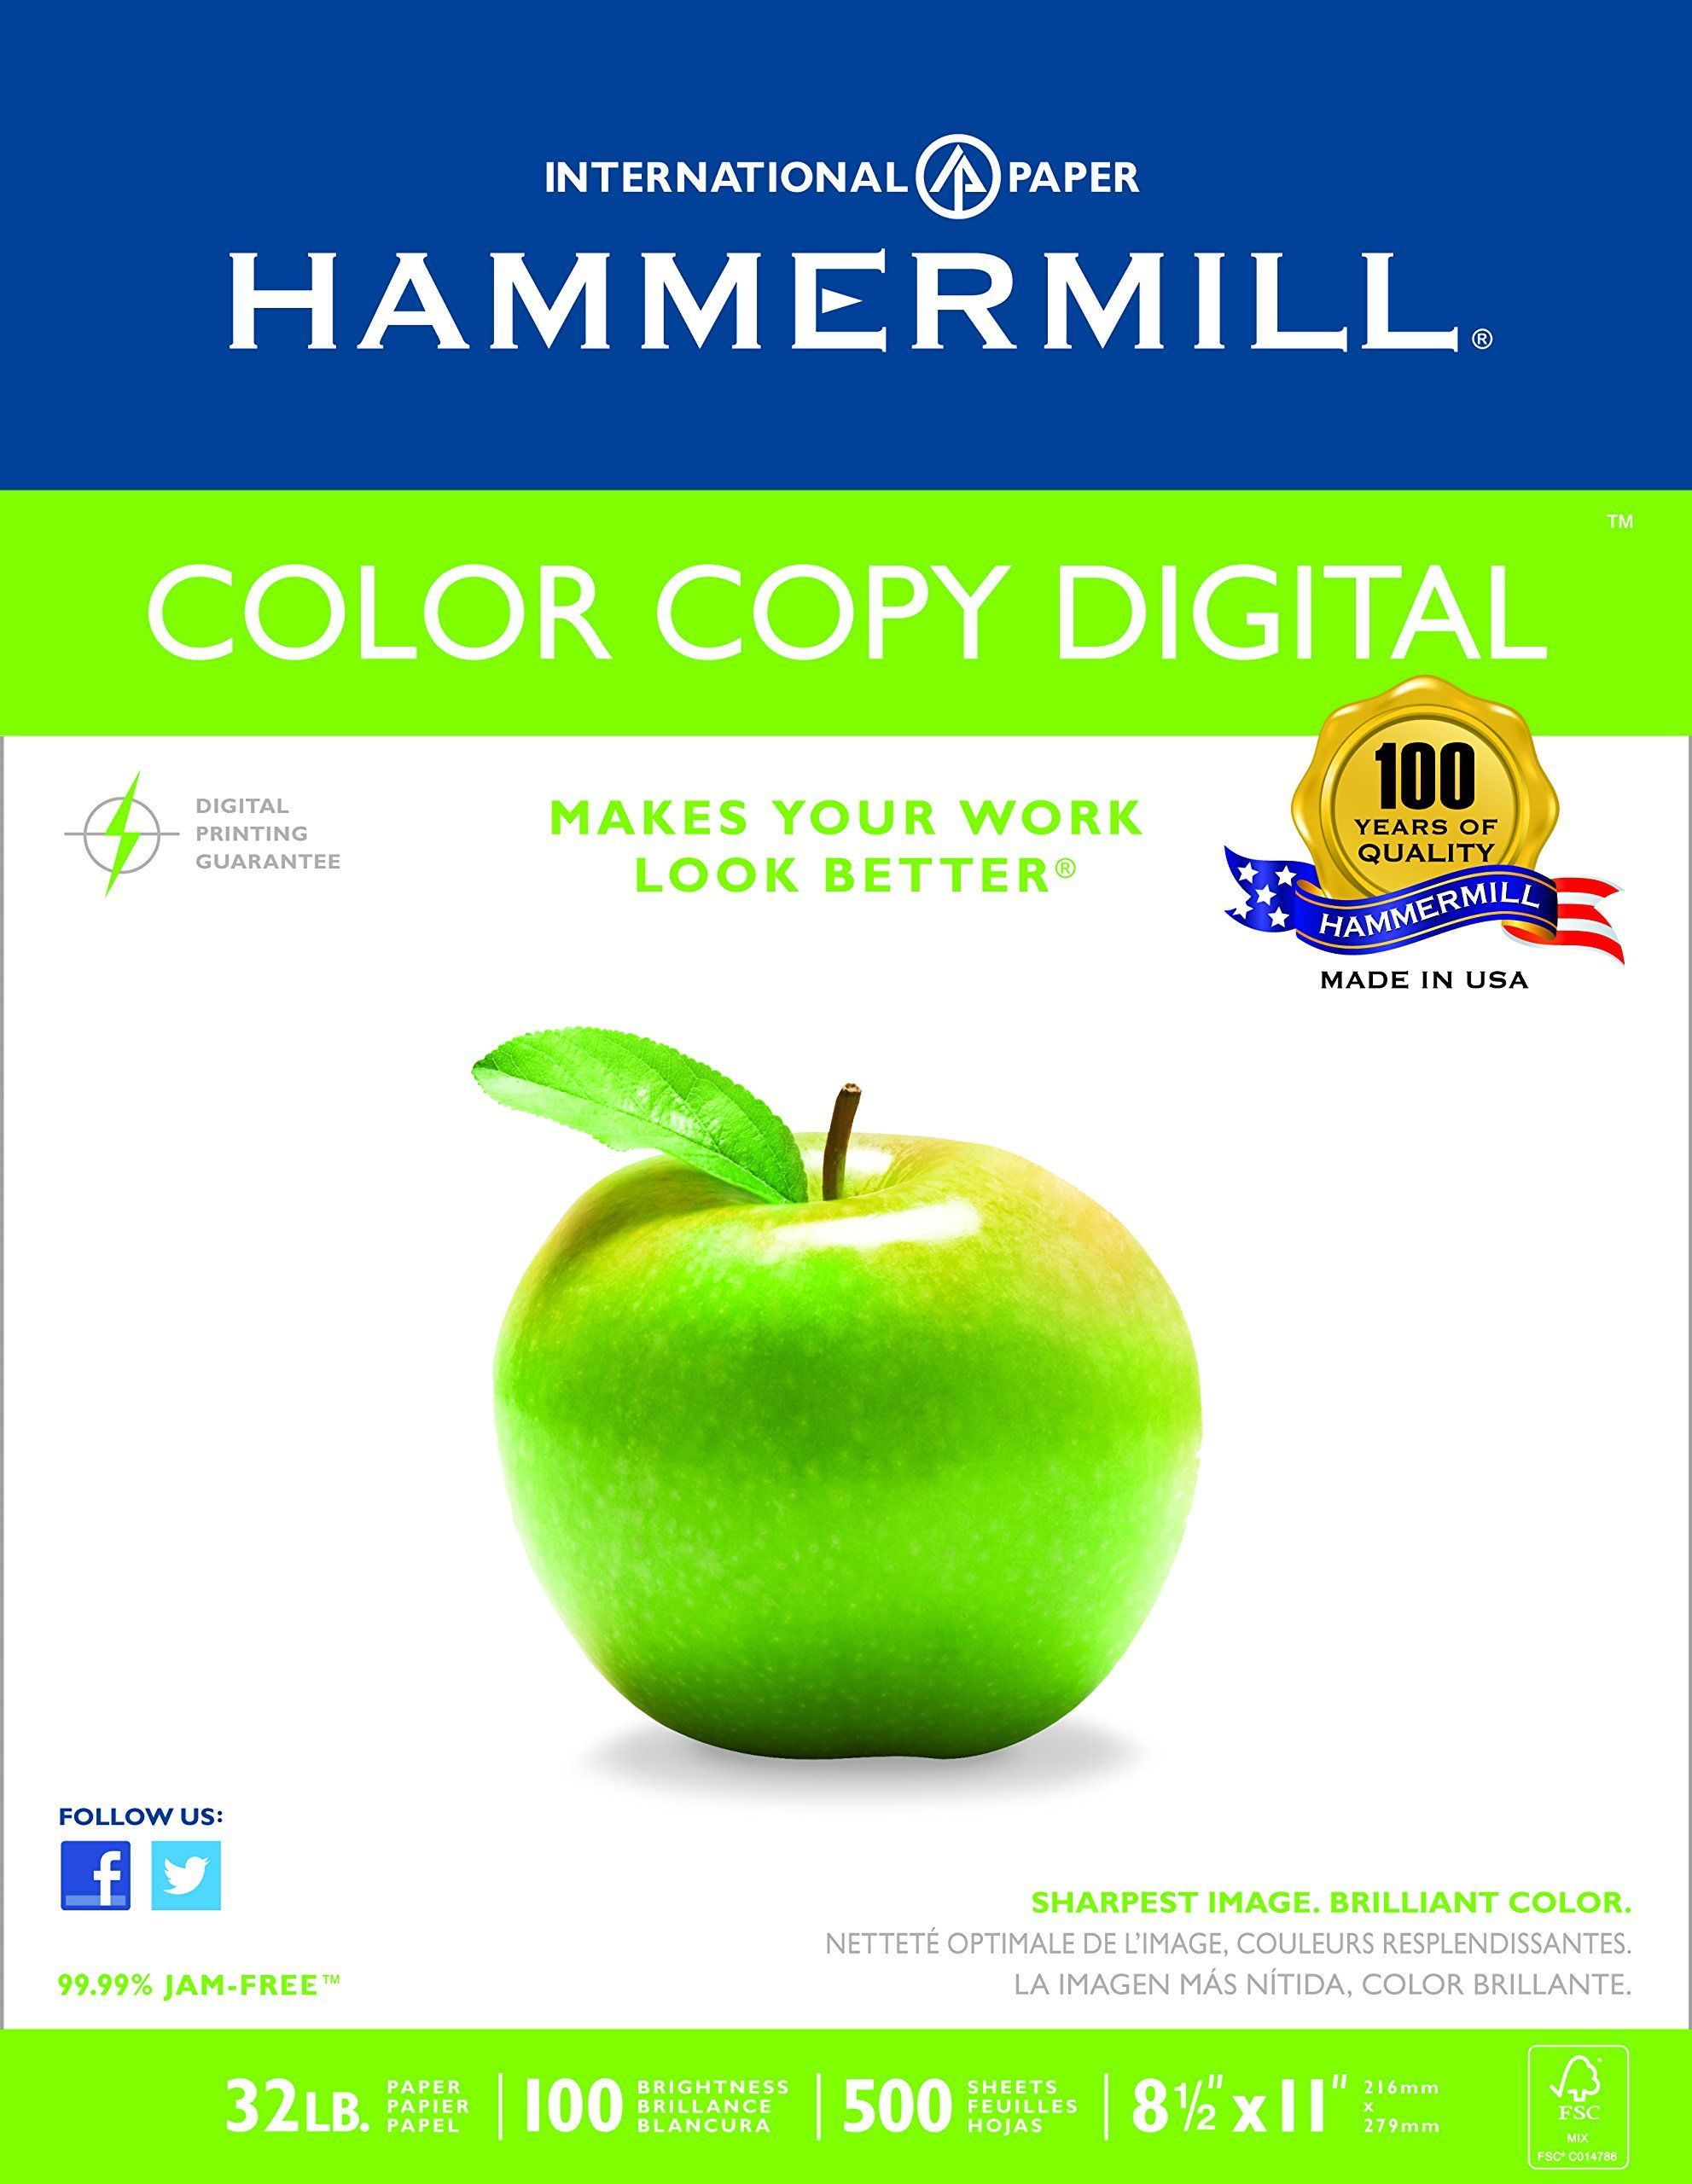 Hammermill Color Copy Digital 32 Lb 8 1 2 X 11 Inches 100